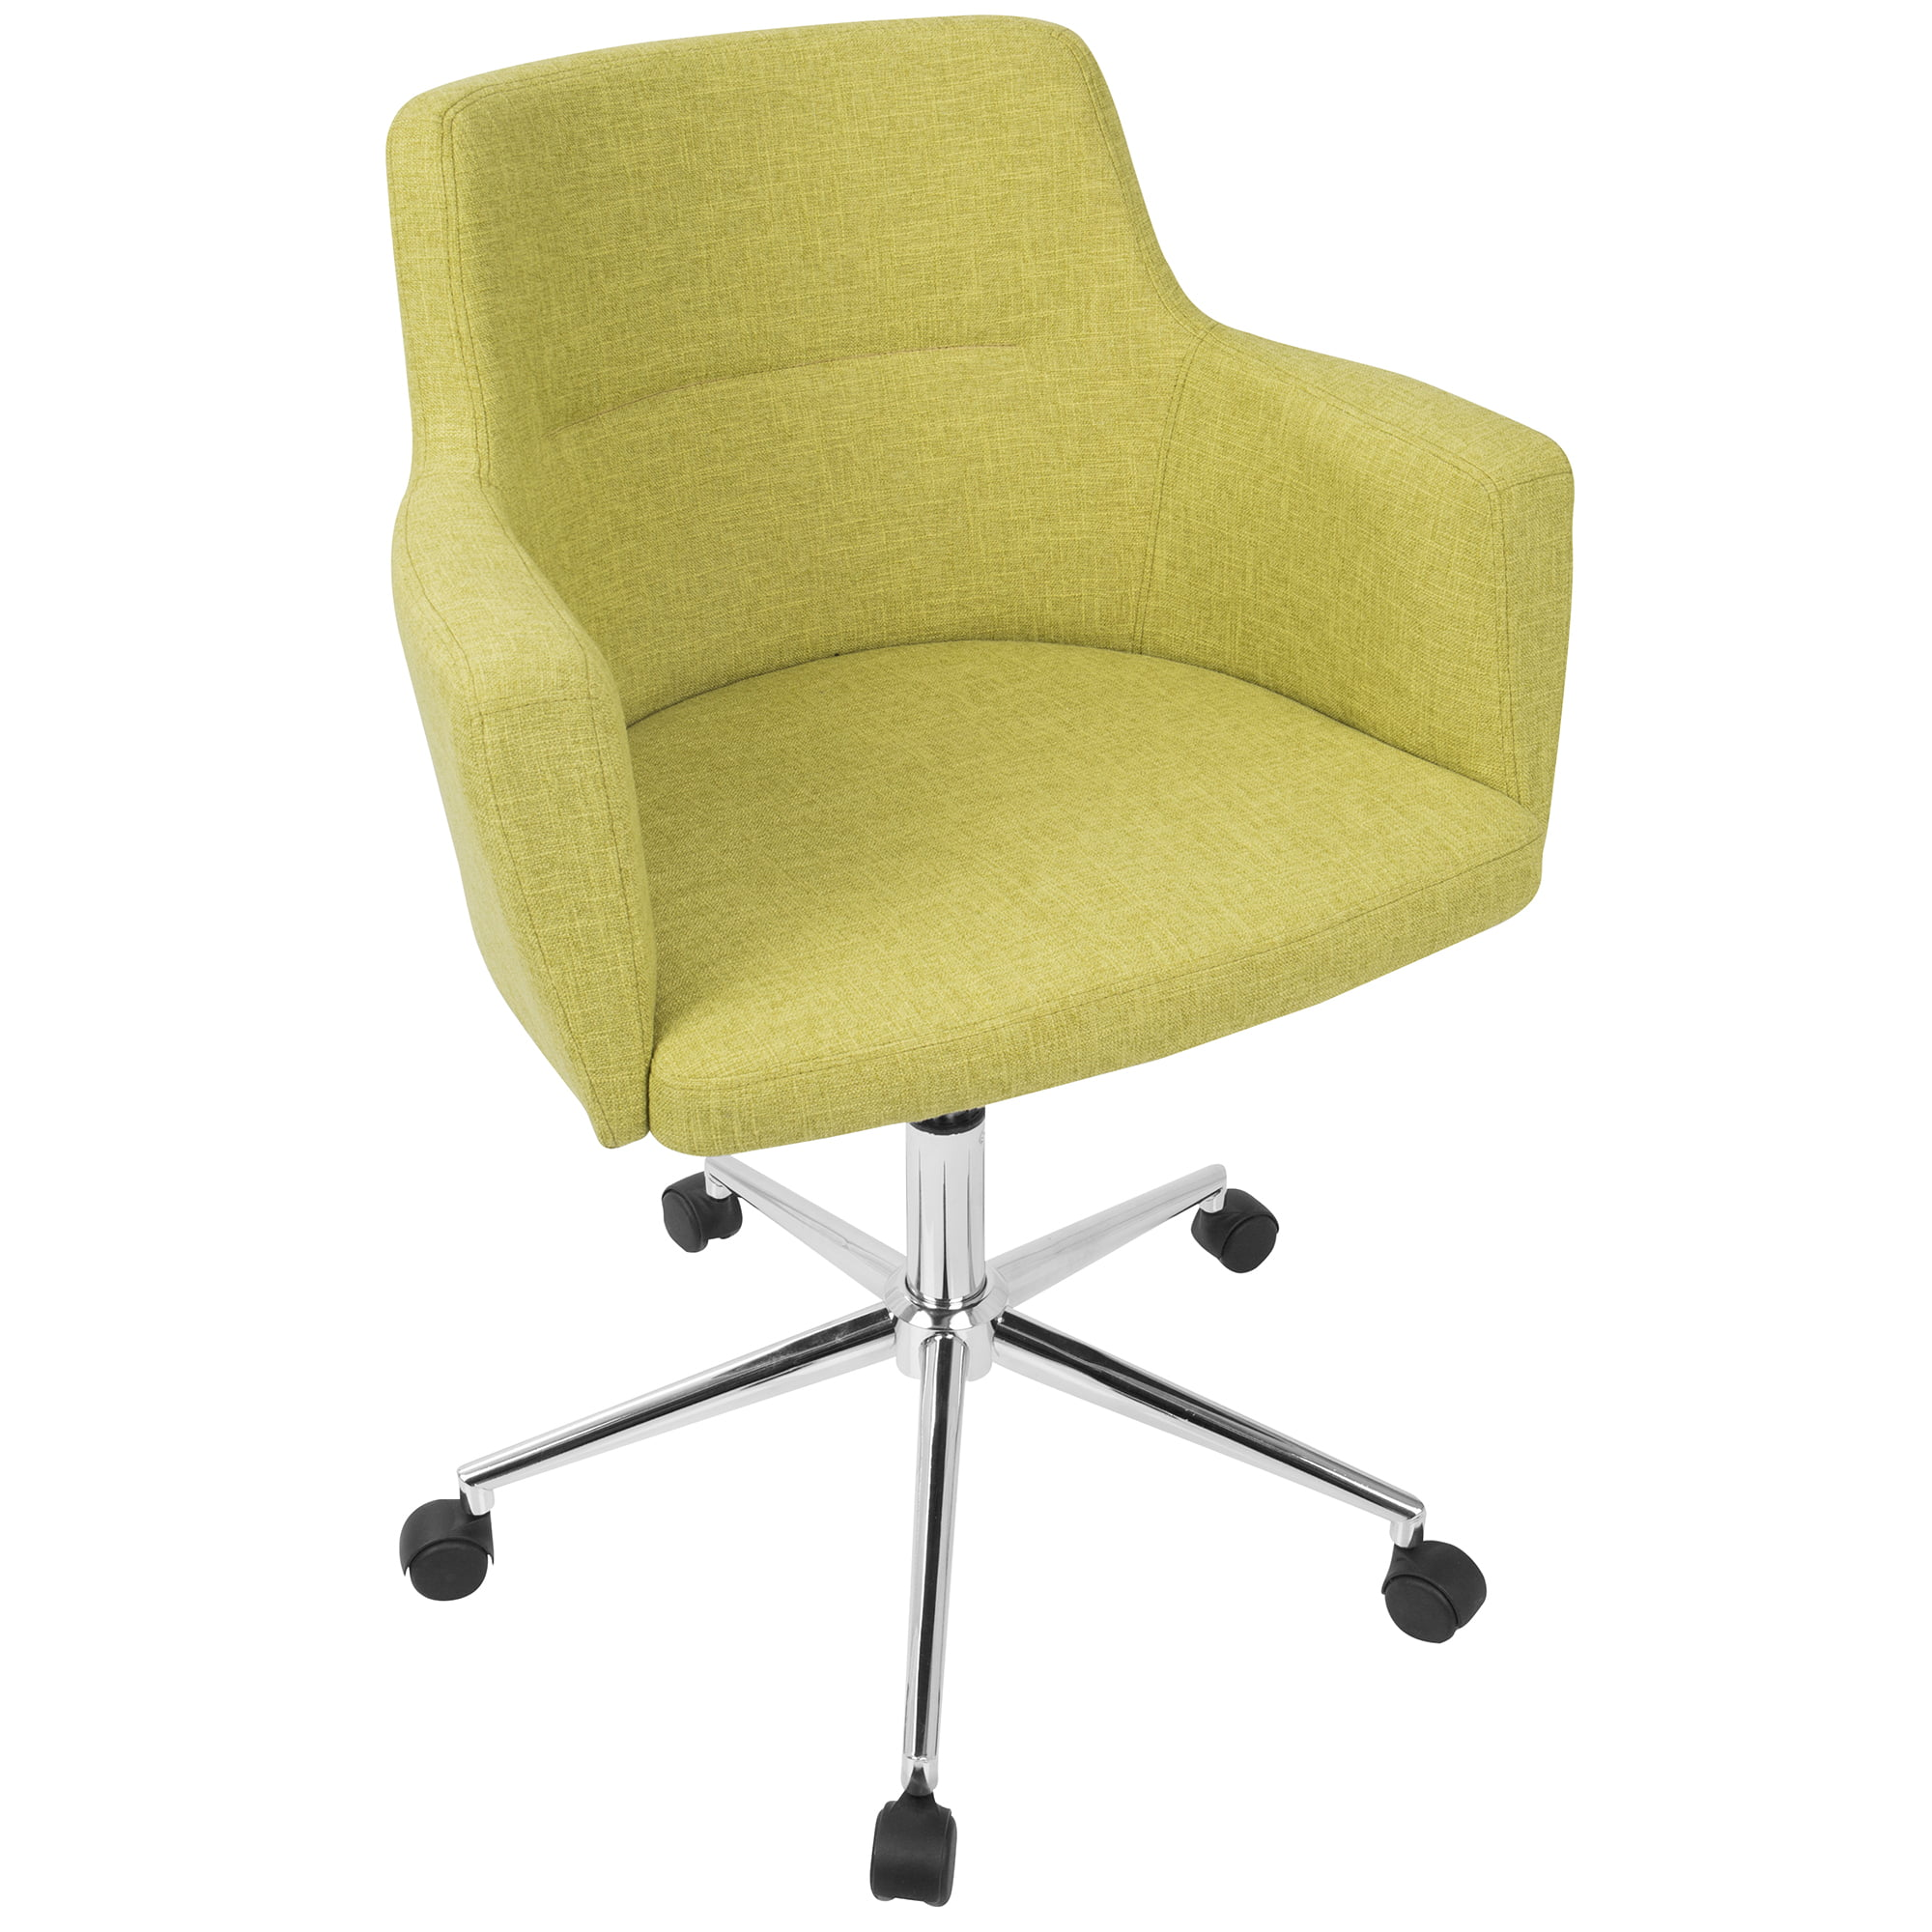 Andrew Contemporary Adjustable Office Chair in Green by Lumisource by LumiSource